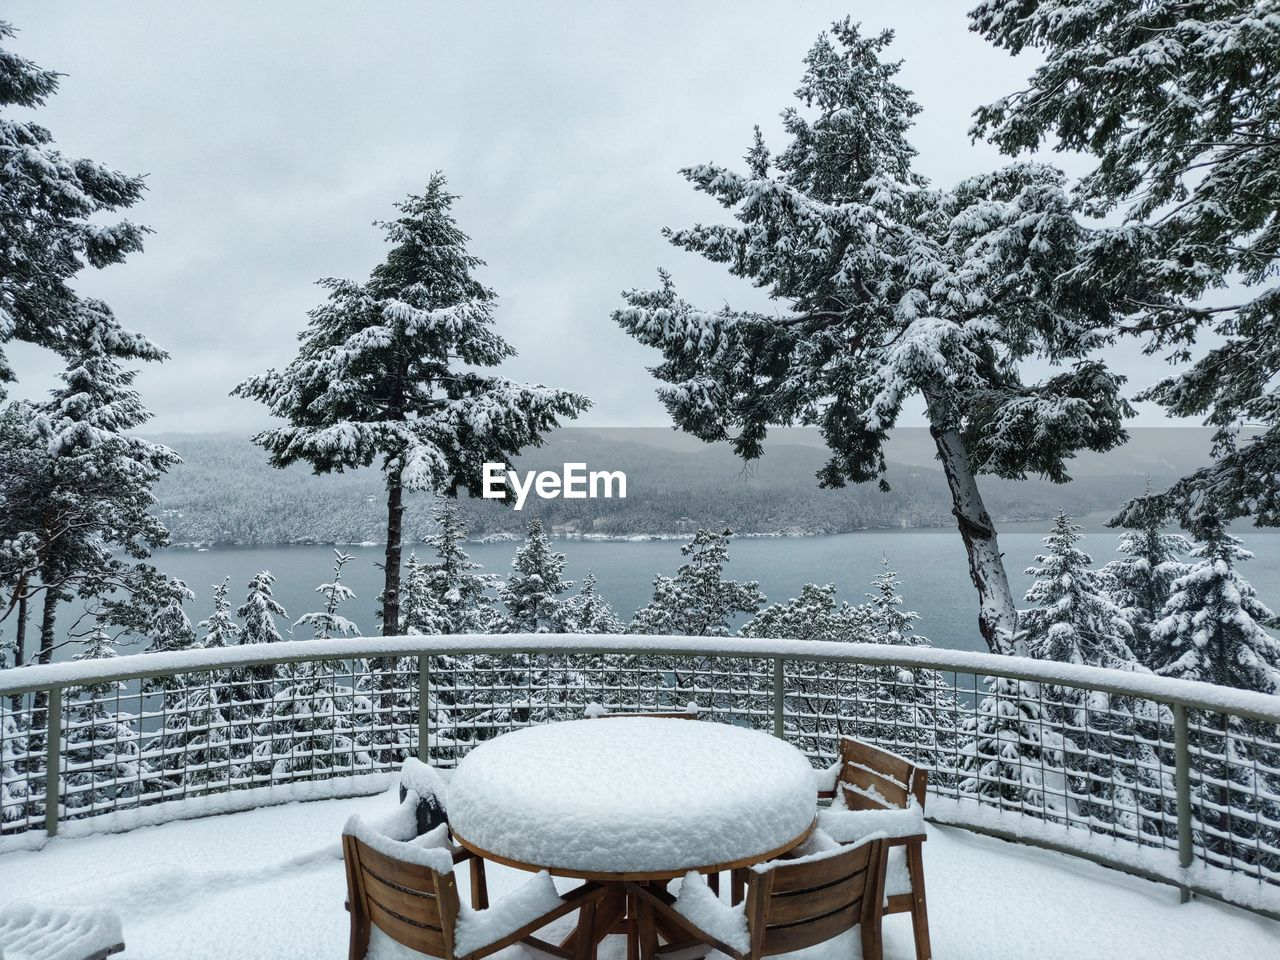 tree, plant, seat, cold temperature, nature, chair, winter, snow, table, absence, no people, beauty in nature, day, scenics - nature, empty, water, tranquility, tranquil scene, railing, outdoors, snowcapped mountain